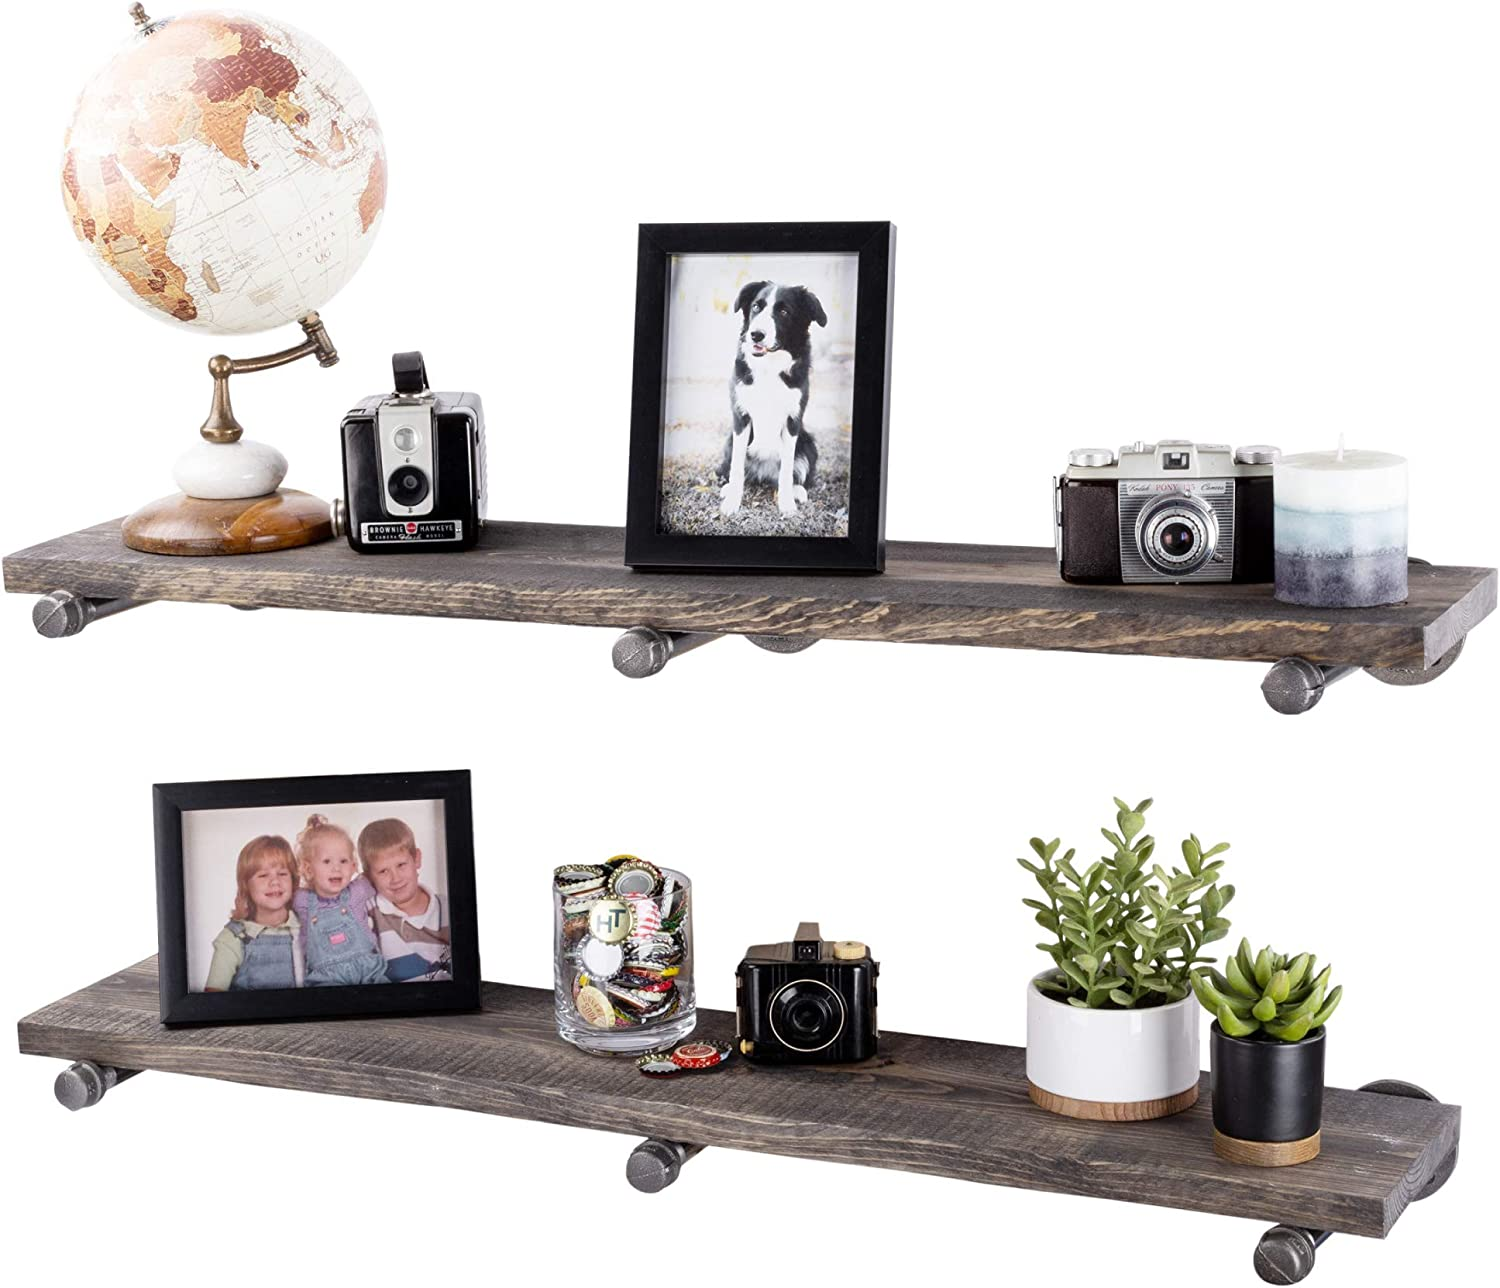 Industrial Pipe Wooden Shelves Restore by PIPE DÉCOR Premium Ponderosa Pine Wood Shelving 36 Inch Length Set of 2 Boards and 6 Straight Brackets Boulder Black Finish